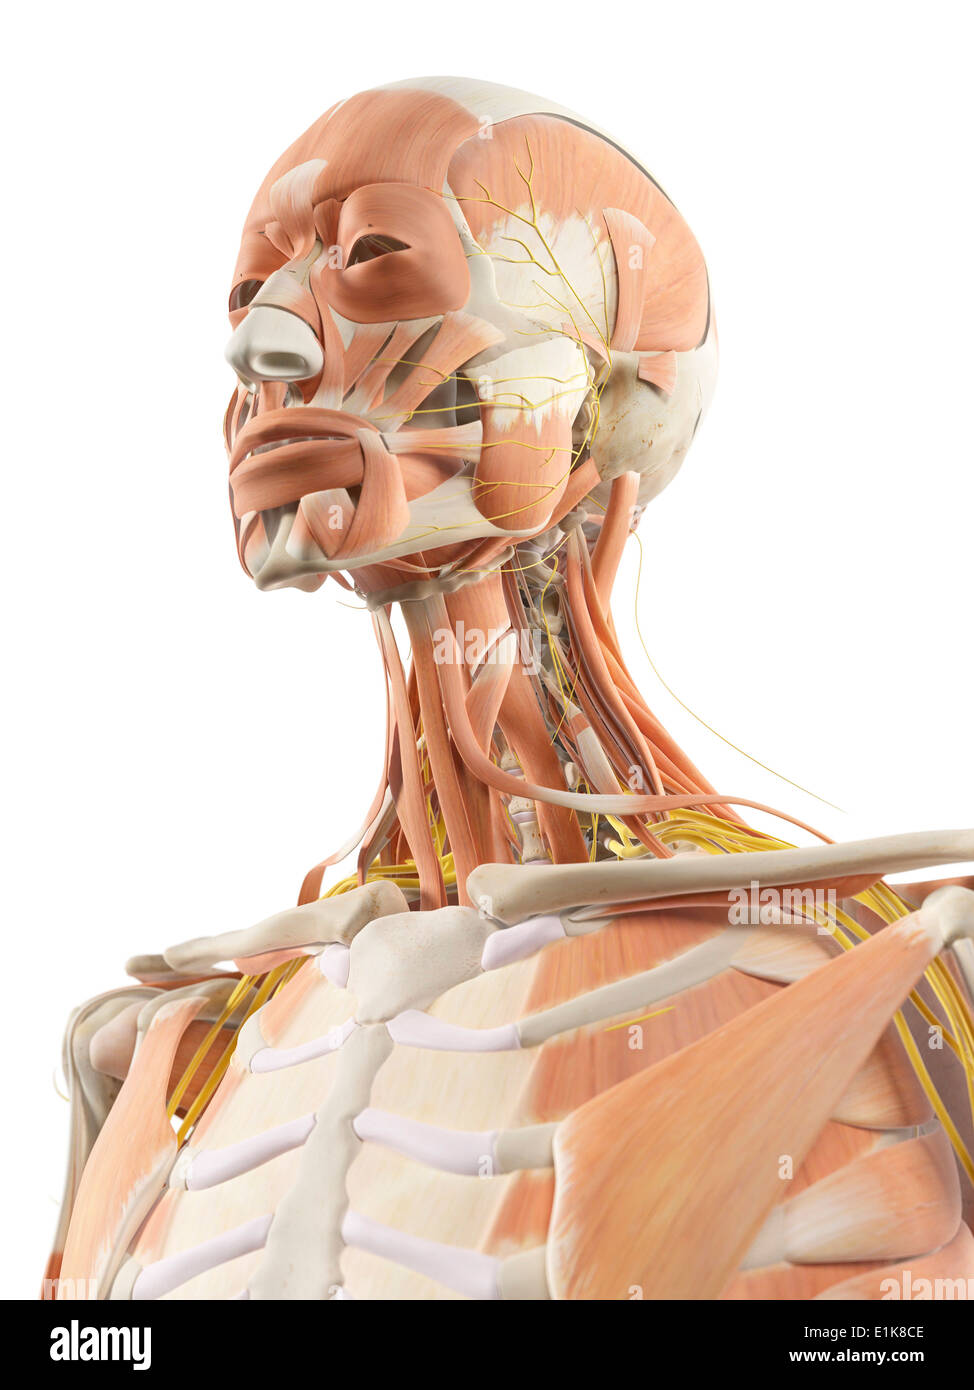 Human neck muscles and nerves computer artwork Stock Photo: 69879838 ...